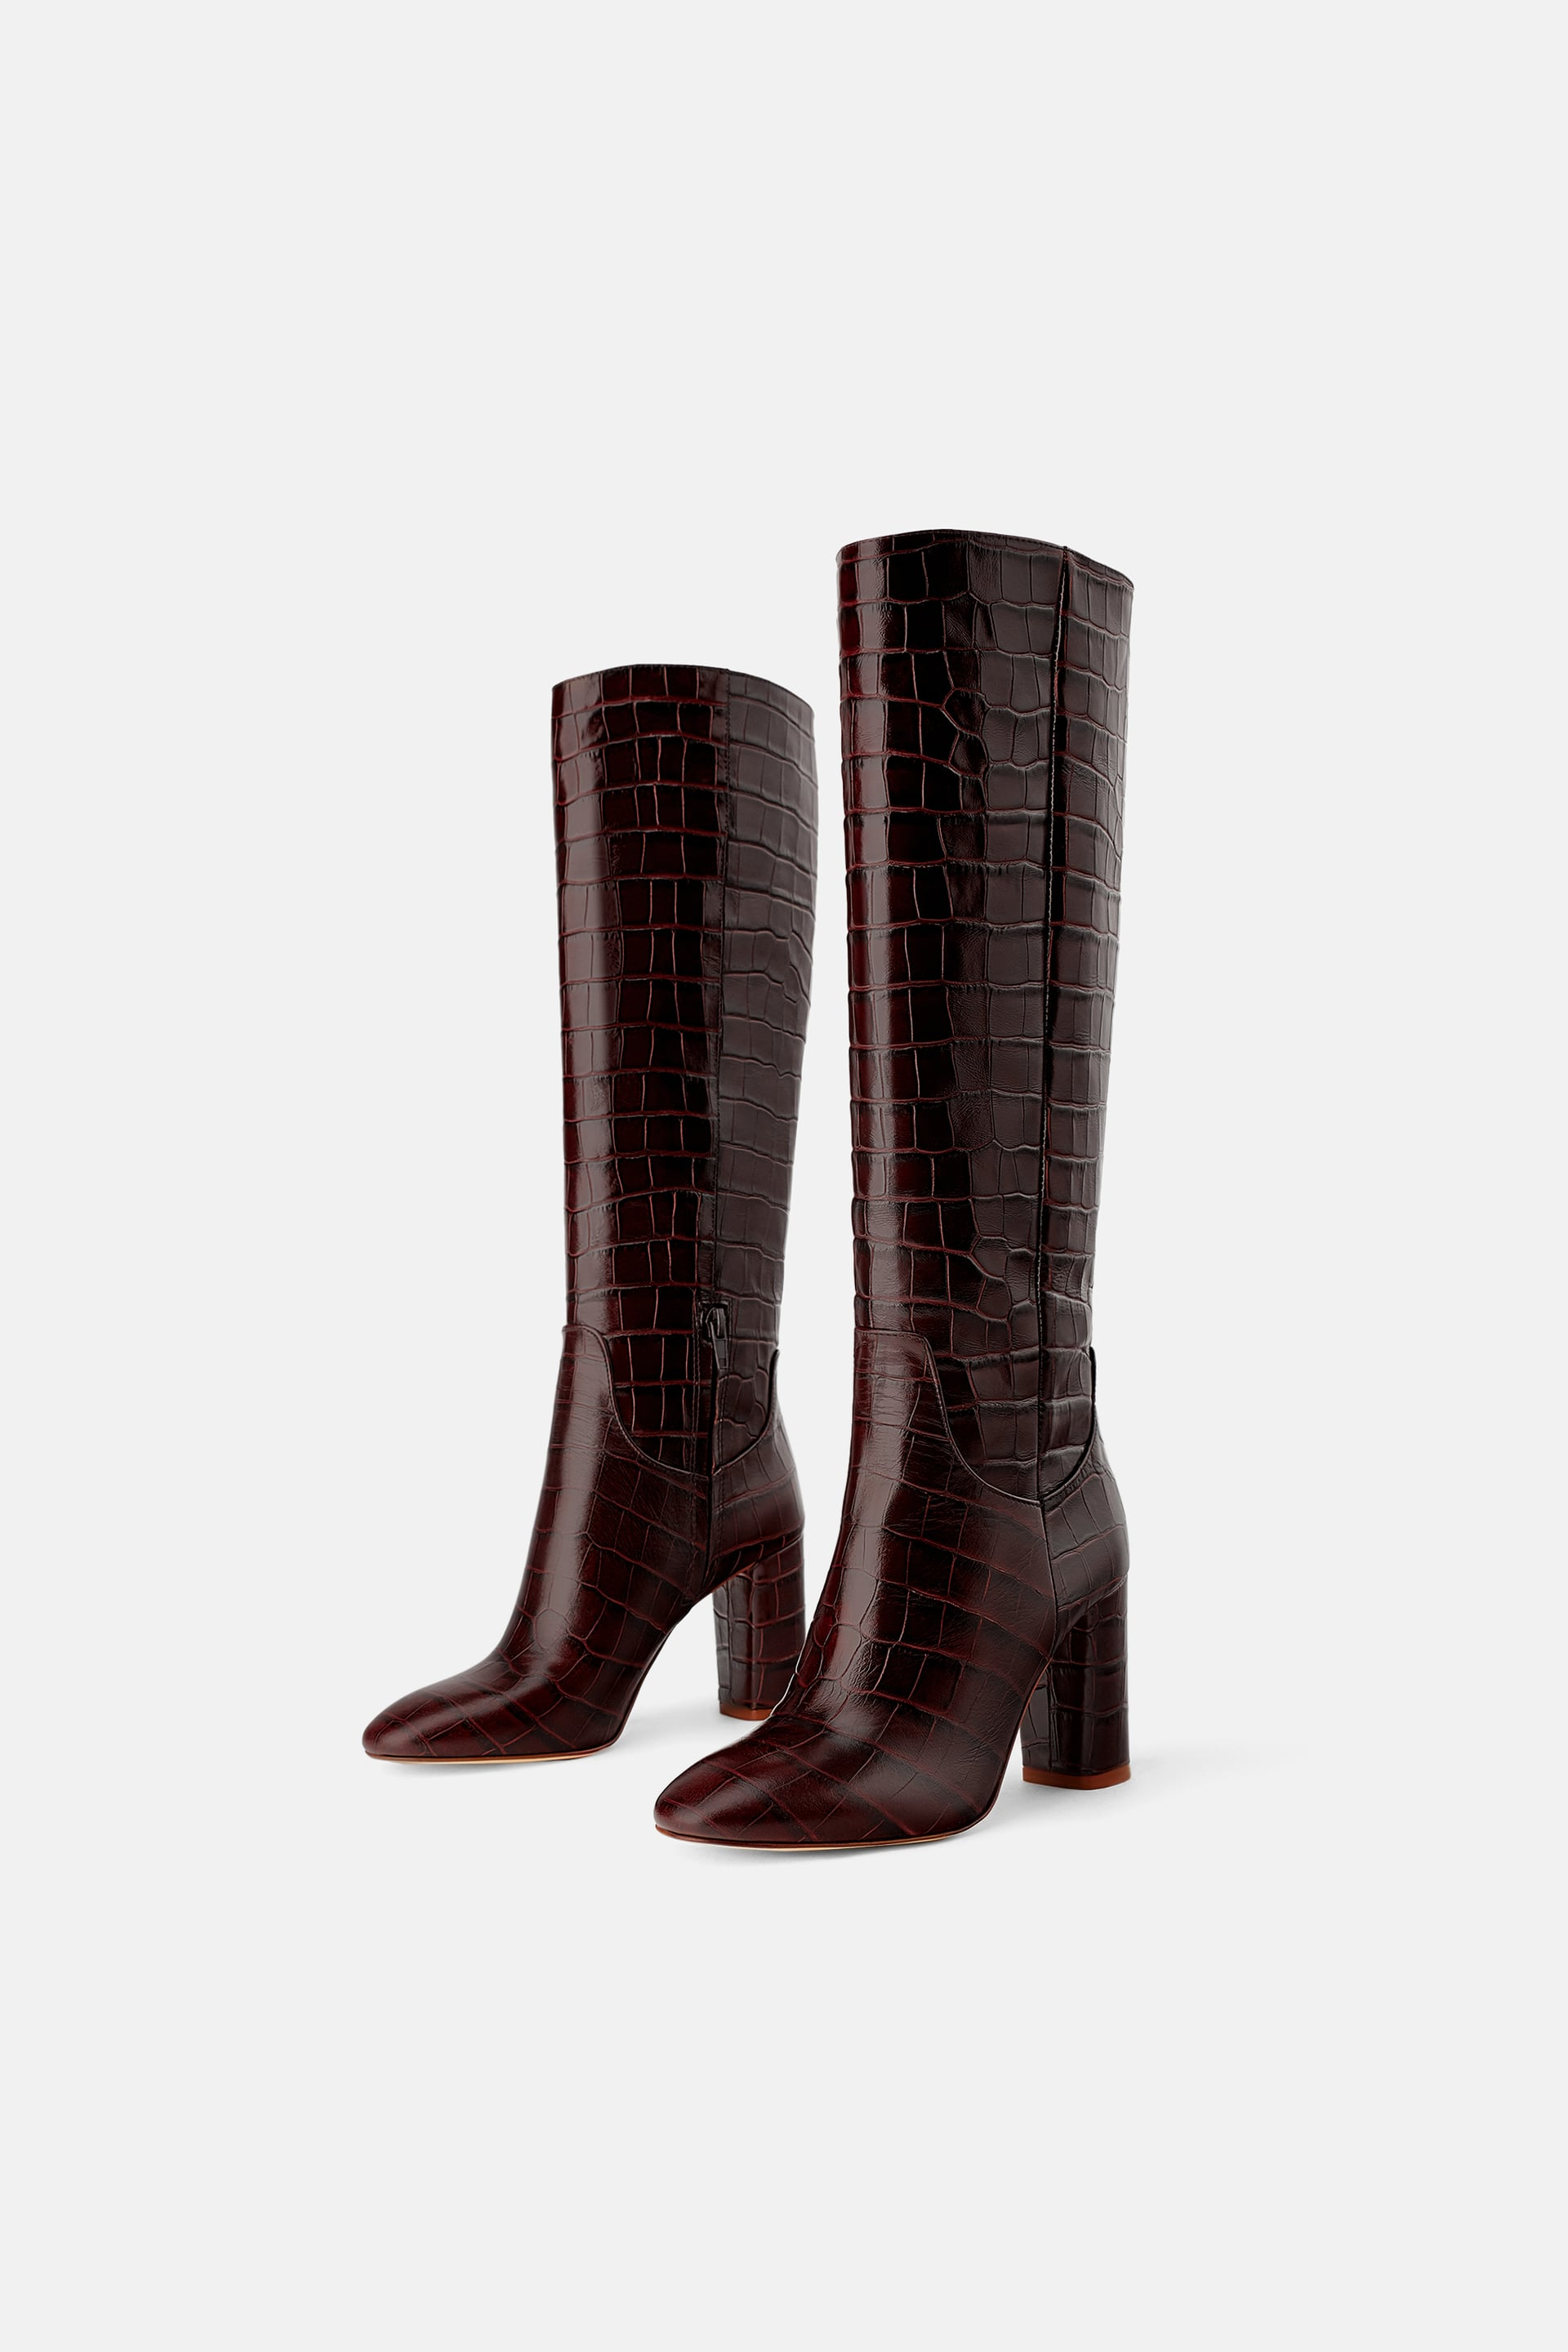 2e513a9af764 Womens Boots Trends - Best Winter 2019 Boot Styles